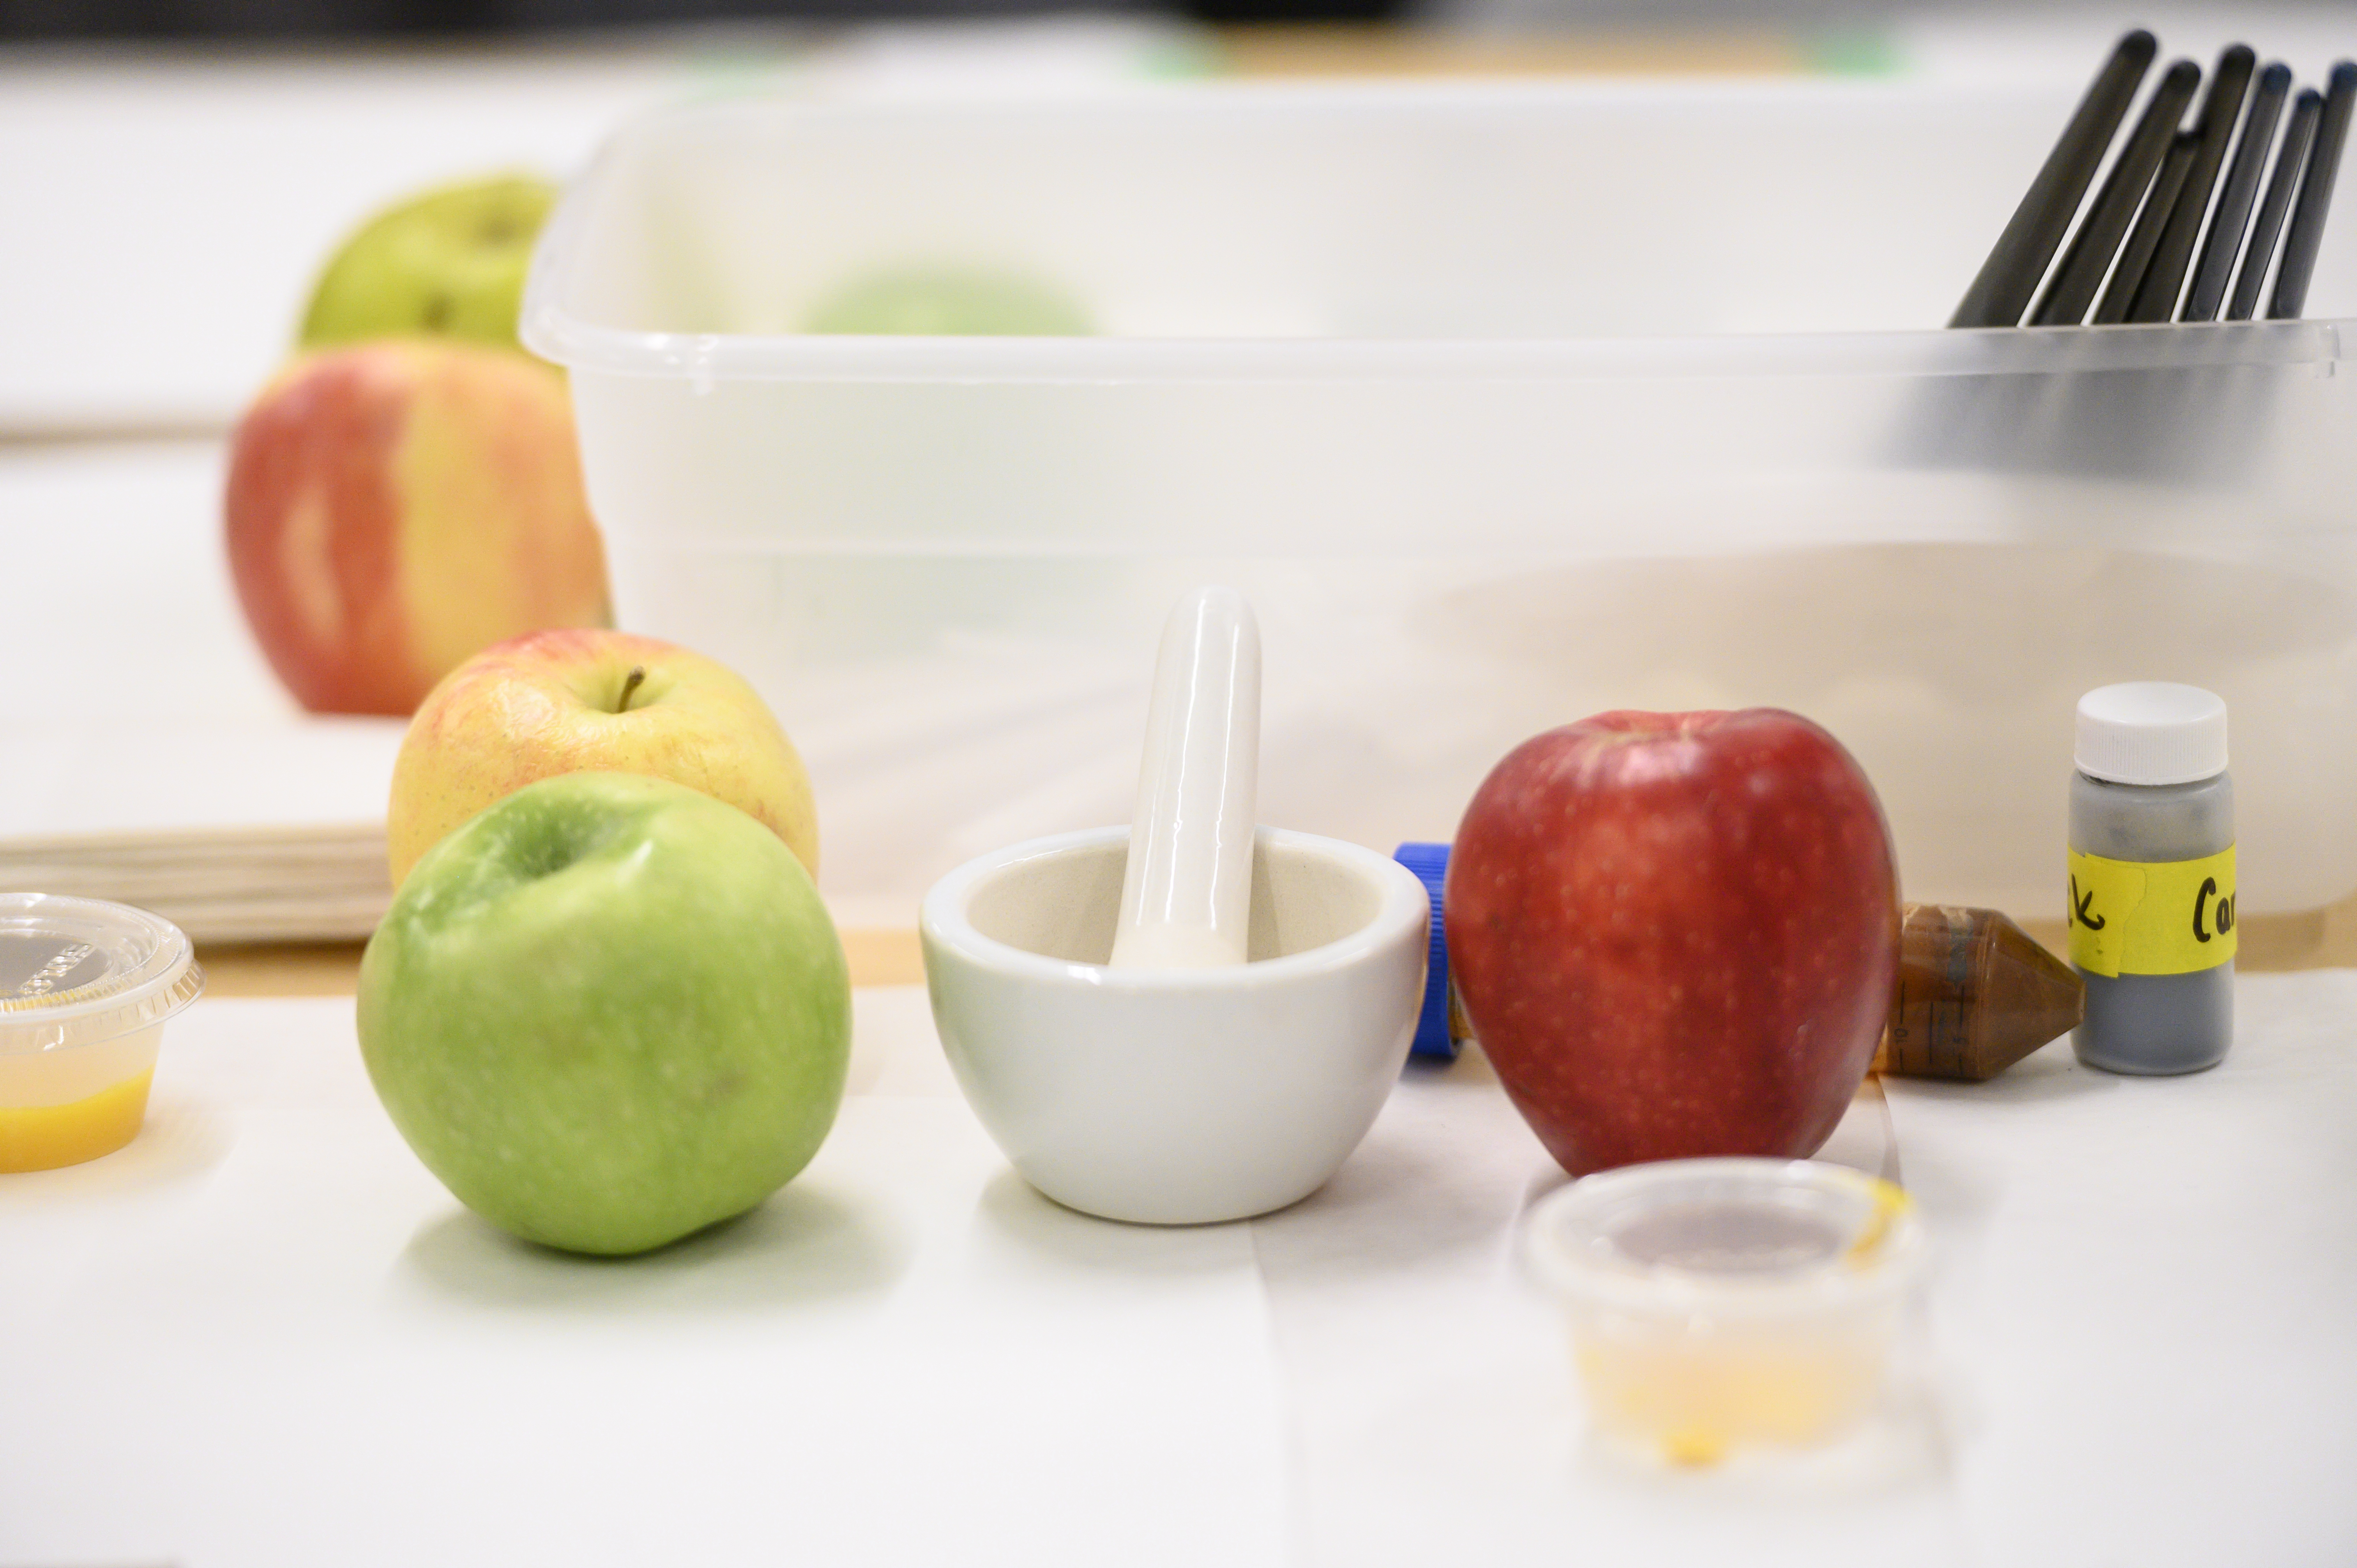 Green and red apple beside mortar and pestle